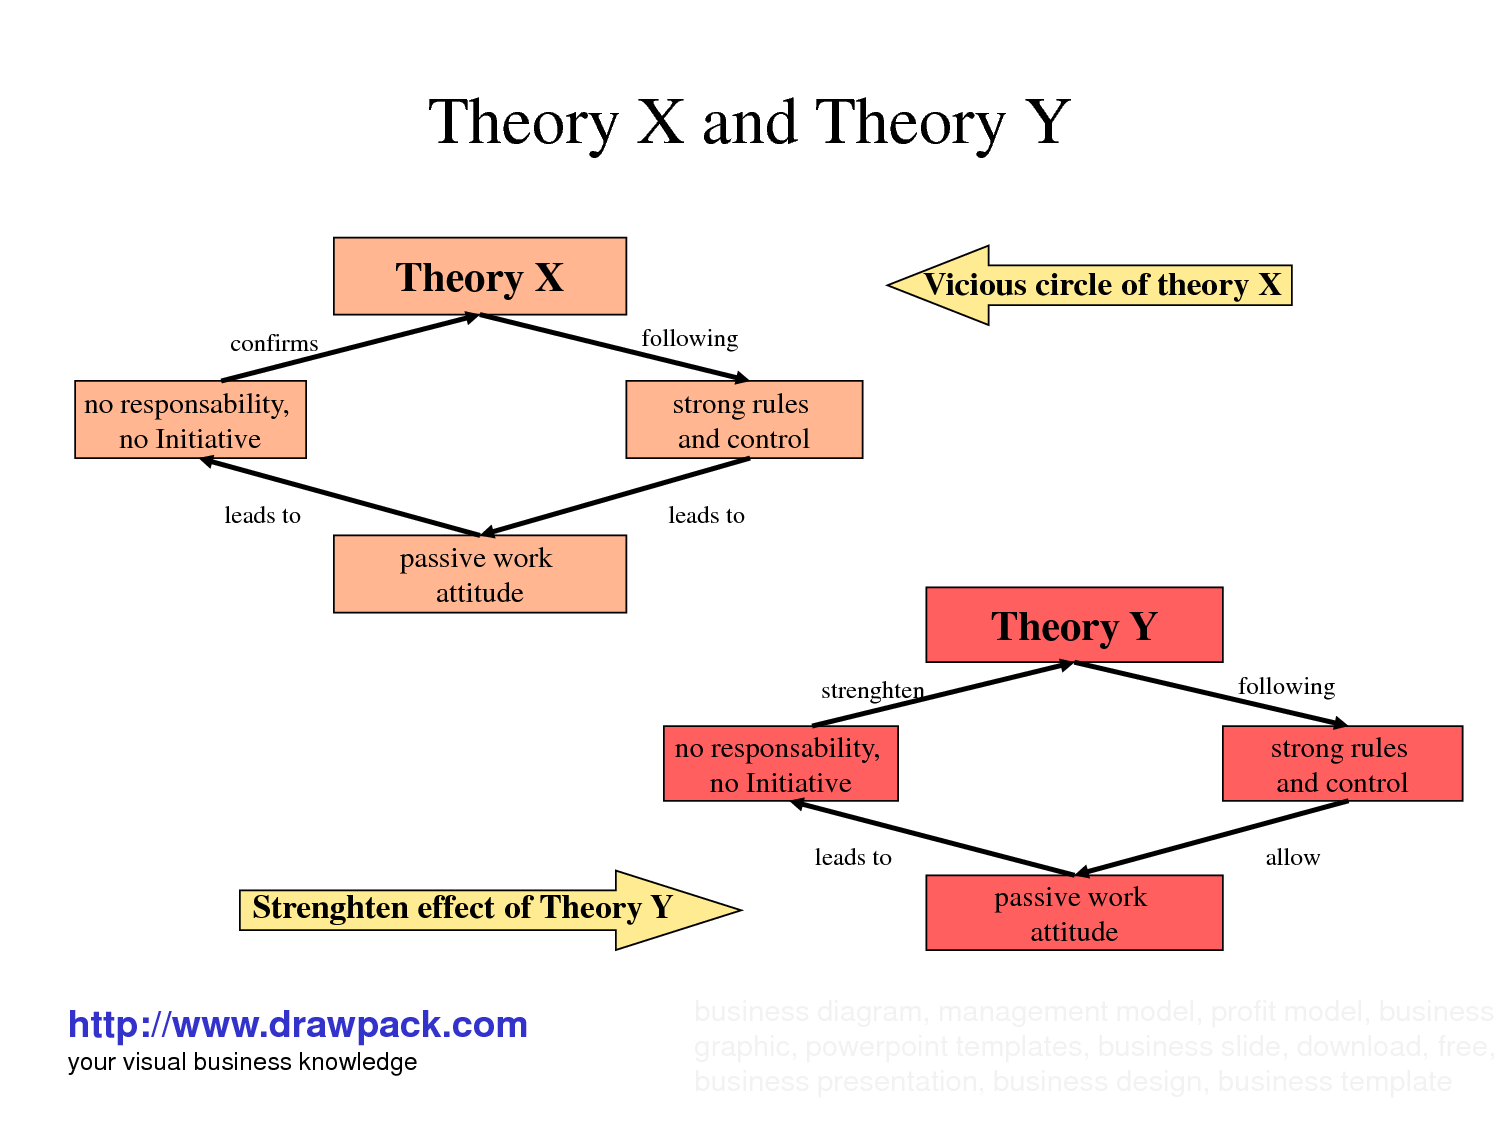 mcgregor theory x and theory y Theory x, theory y by douglas mcgregor is a motivation theory douglas mcgregor is a social psychologist and applied two sets of assumptions to the organizational structure called theory x and theory y.